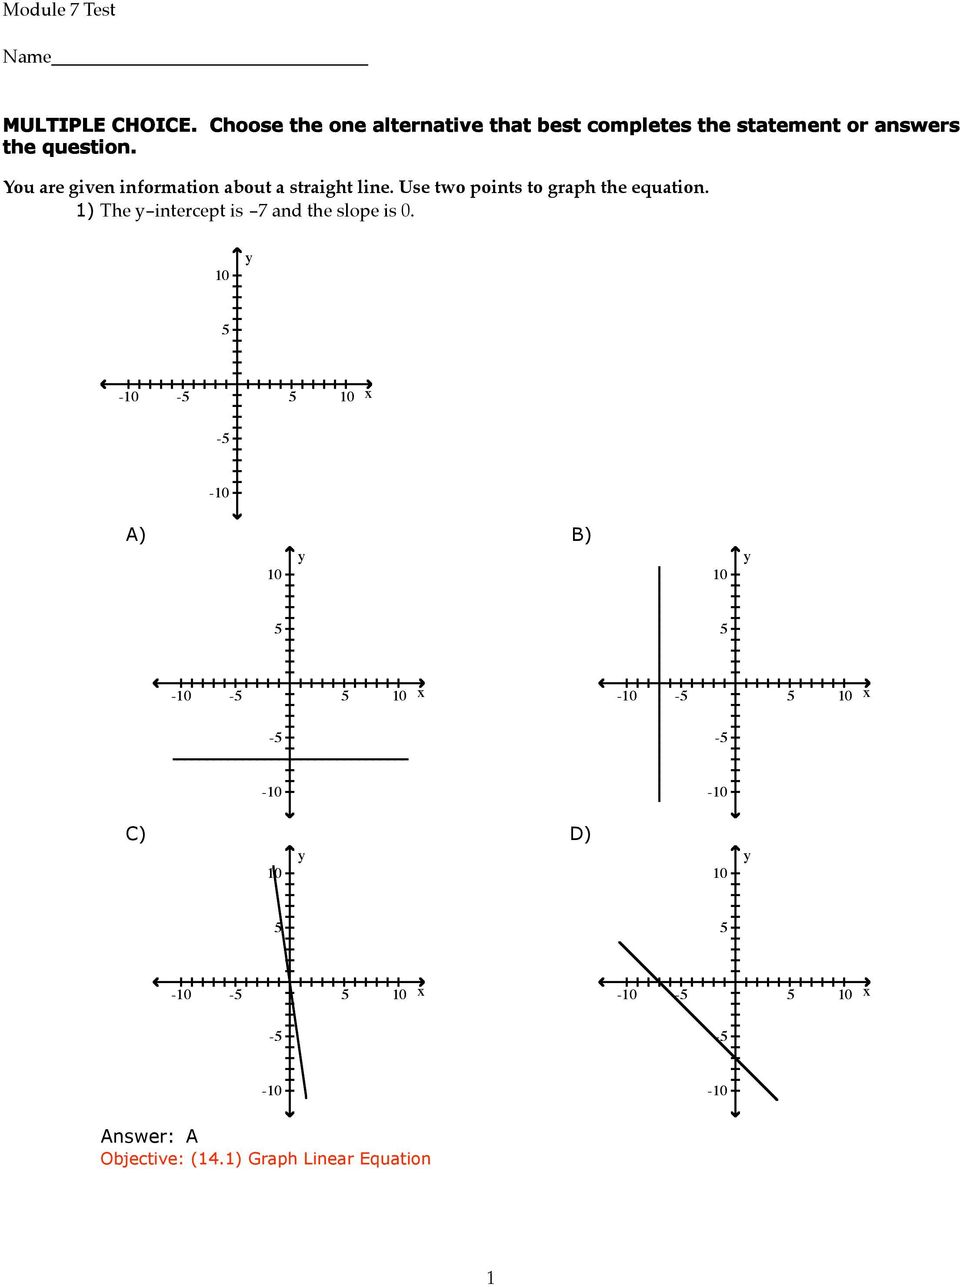 You are given information about a straight line. Use two points to graph the equation.